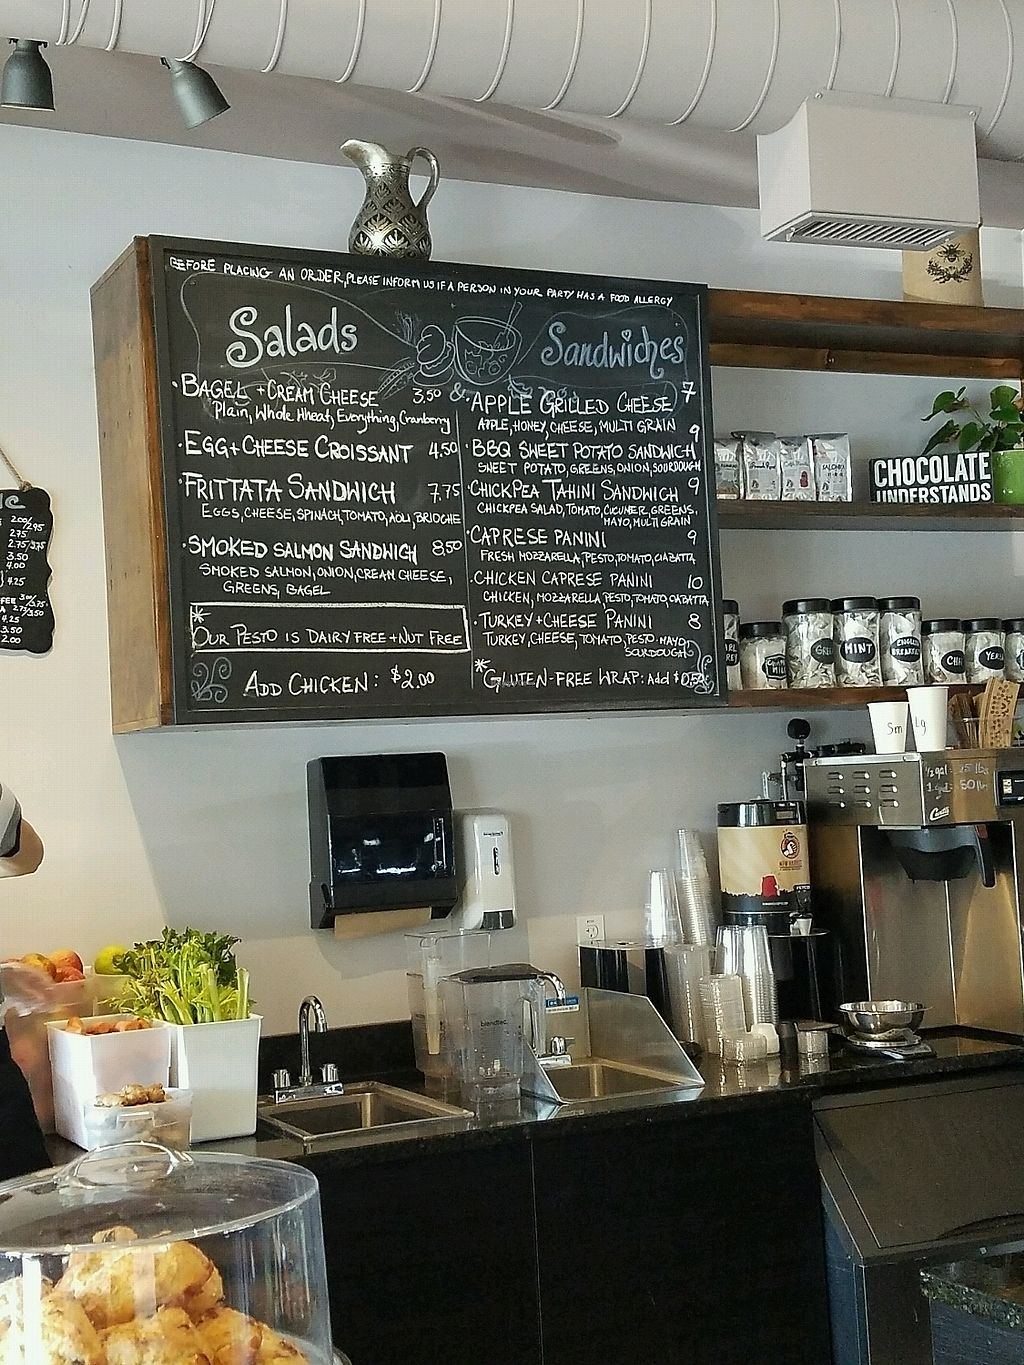 """Photo of Organic Buzz Cafe & Juice Bar  by <a href=""""/members/profile/VictoriaAllison"""">VictoriaAllison</a> <br/>Salad & Sandwhich menu  <br/> July 3, 2017  - <a href='/contact/abuse/image/79359/276343'>Report</a>"""